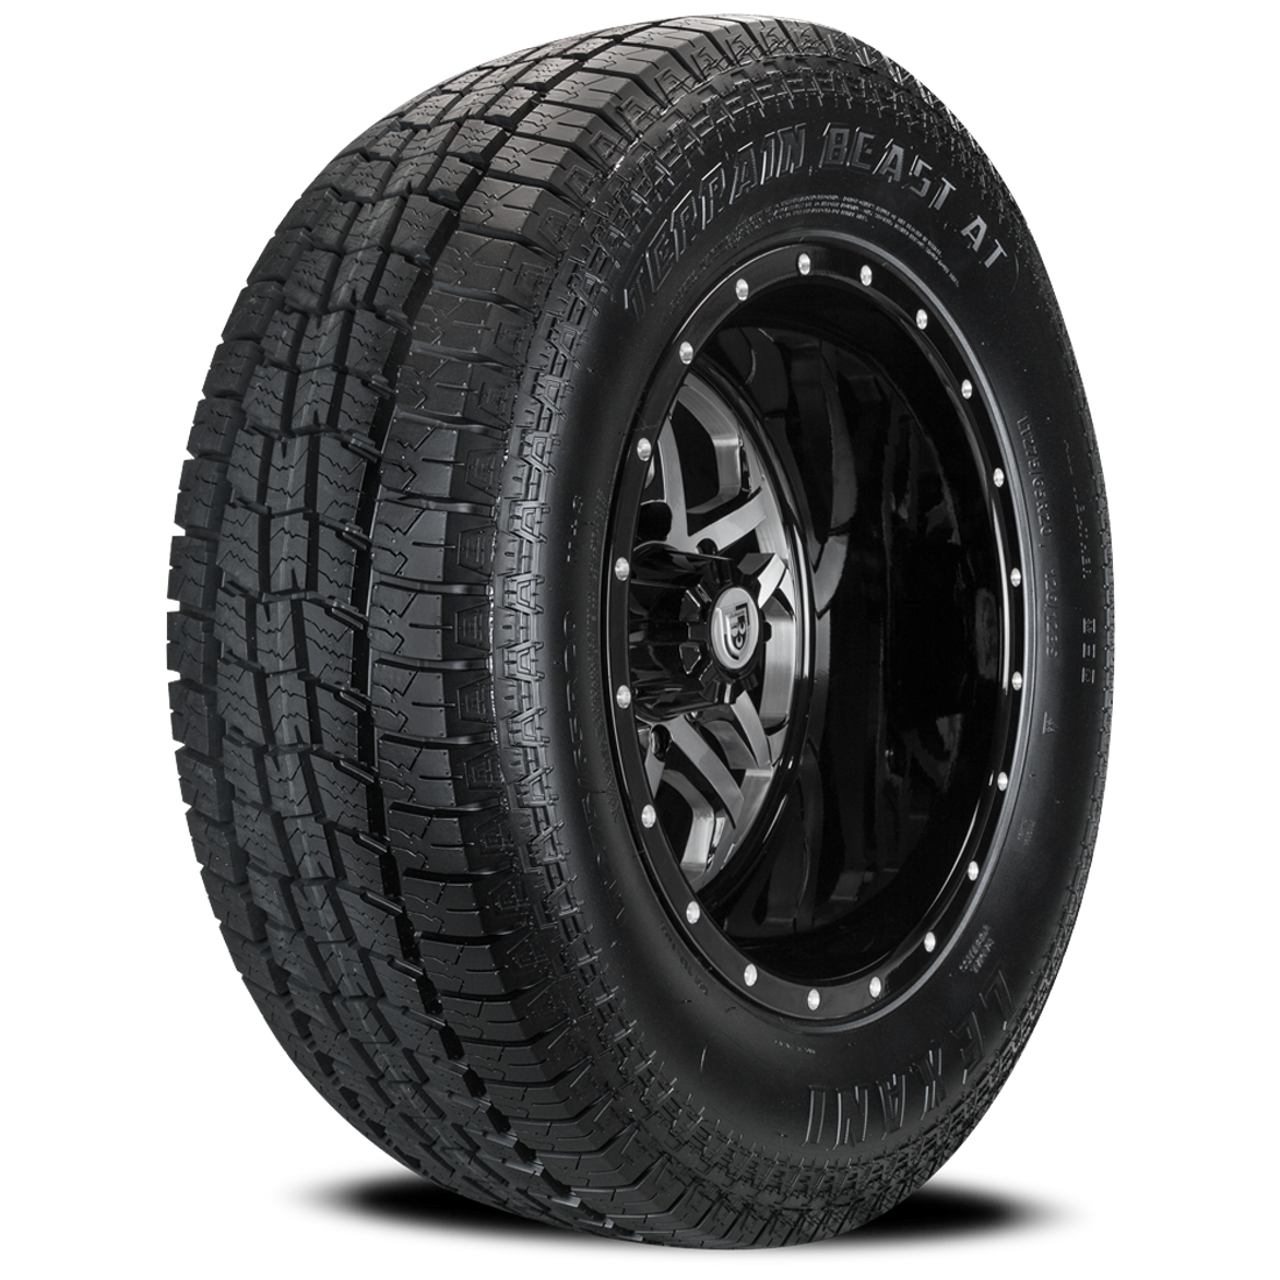 Cheapest Tires Online Free Shipping >> Lexani® Terrain Beast AT 285/60R20 Tires   LXSTAT2060030 ...